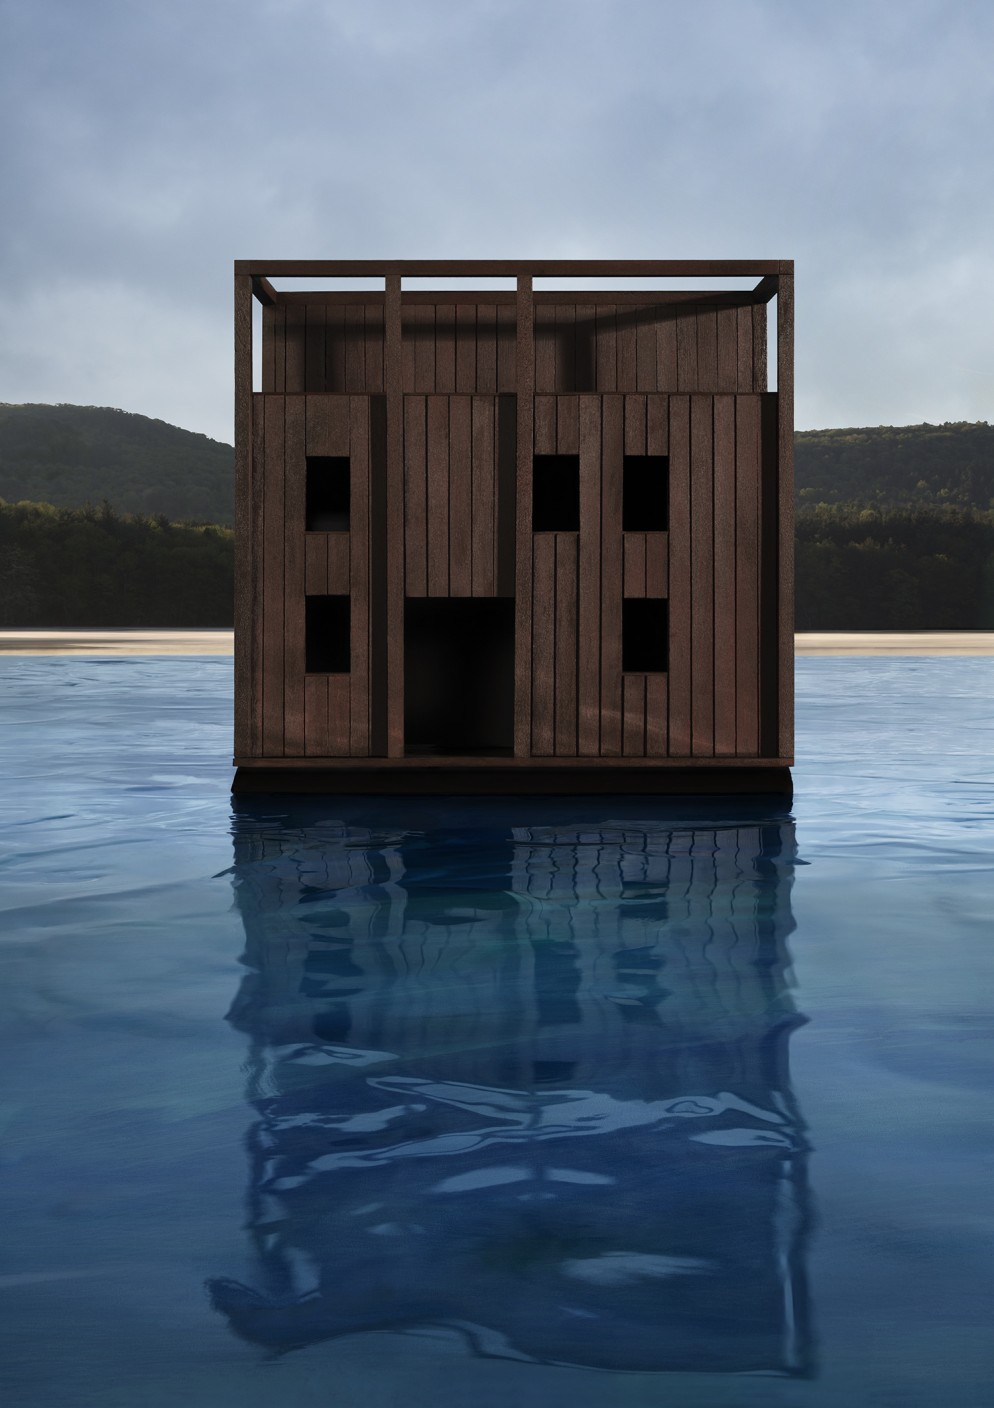 CASEBERE_Dark Cube on Water_2019_Copyright of the artist_Courtesy Galerie Templon Paris Brussels